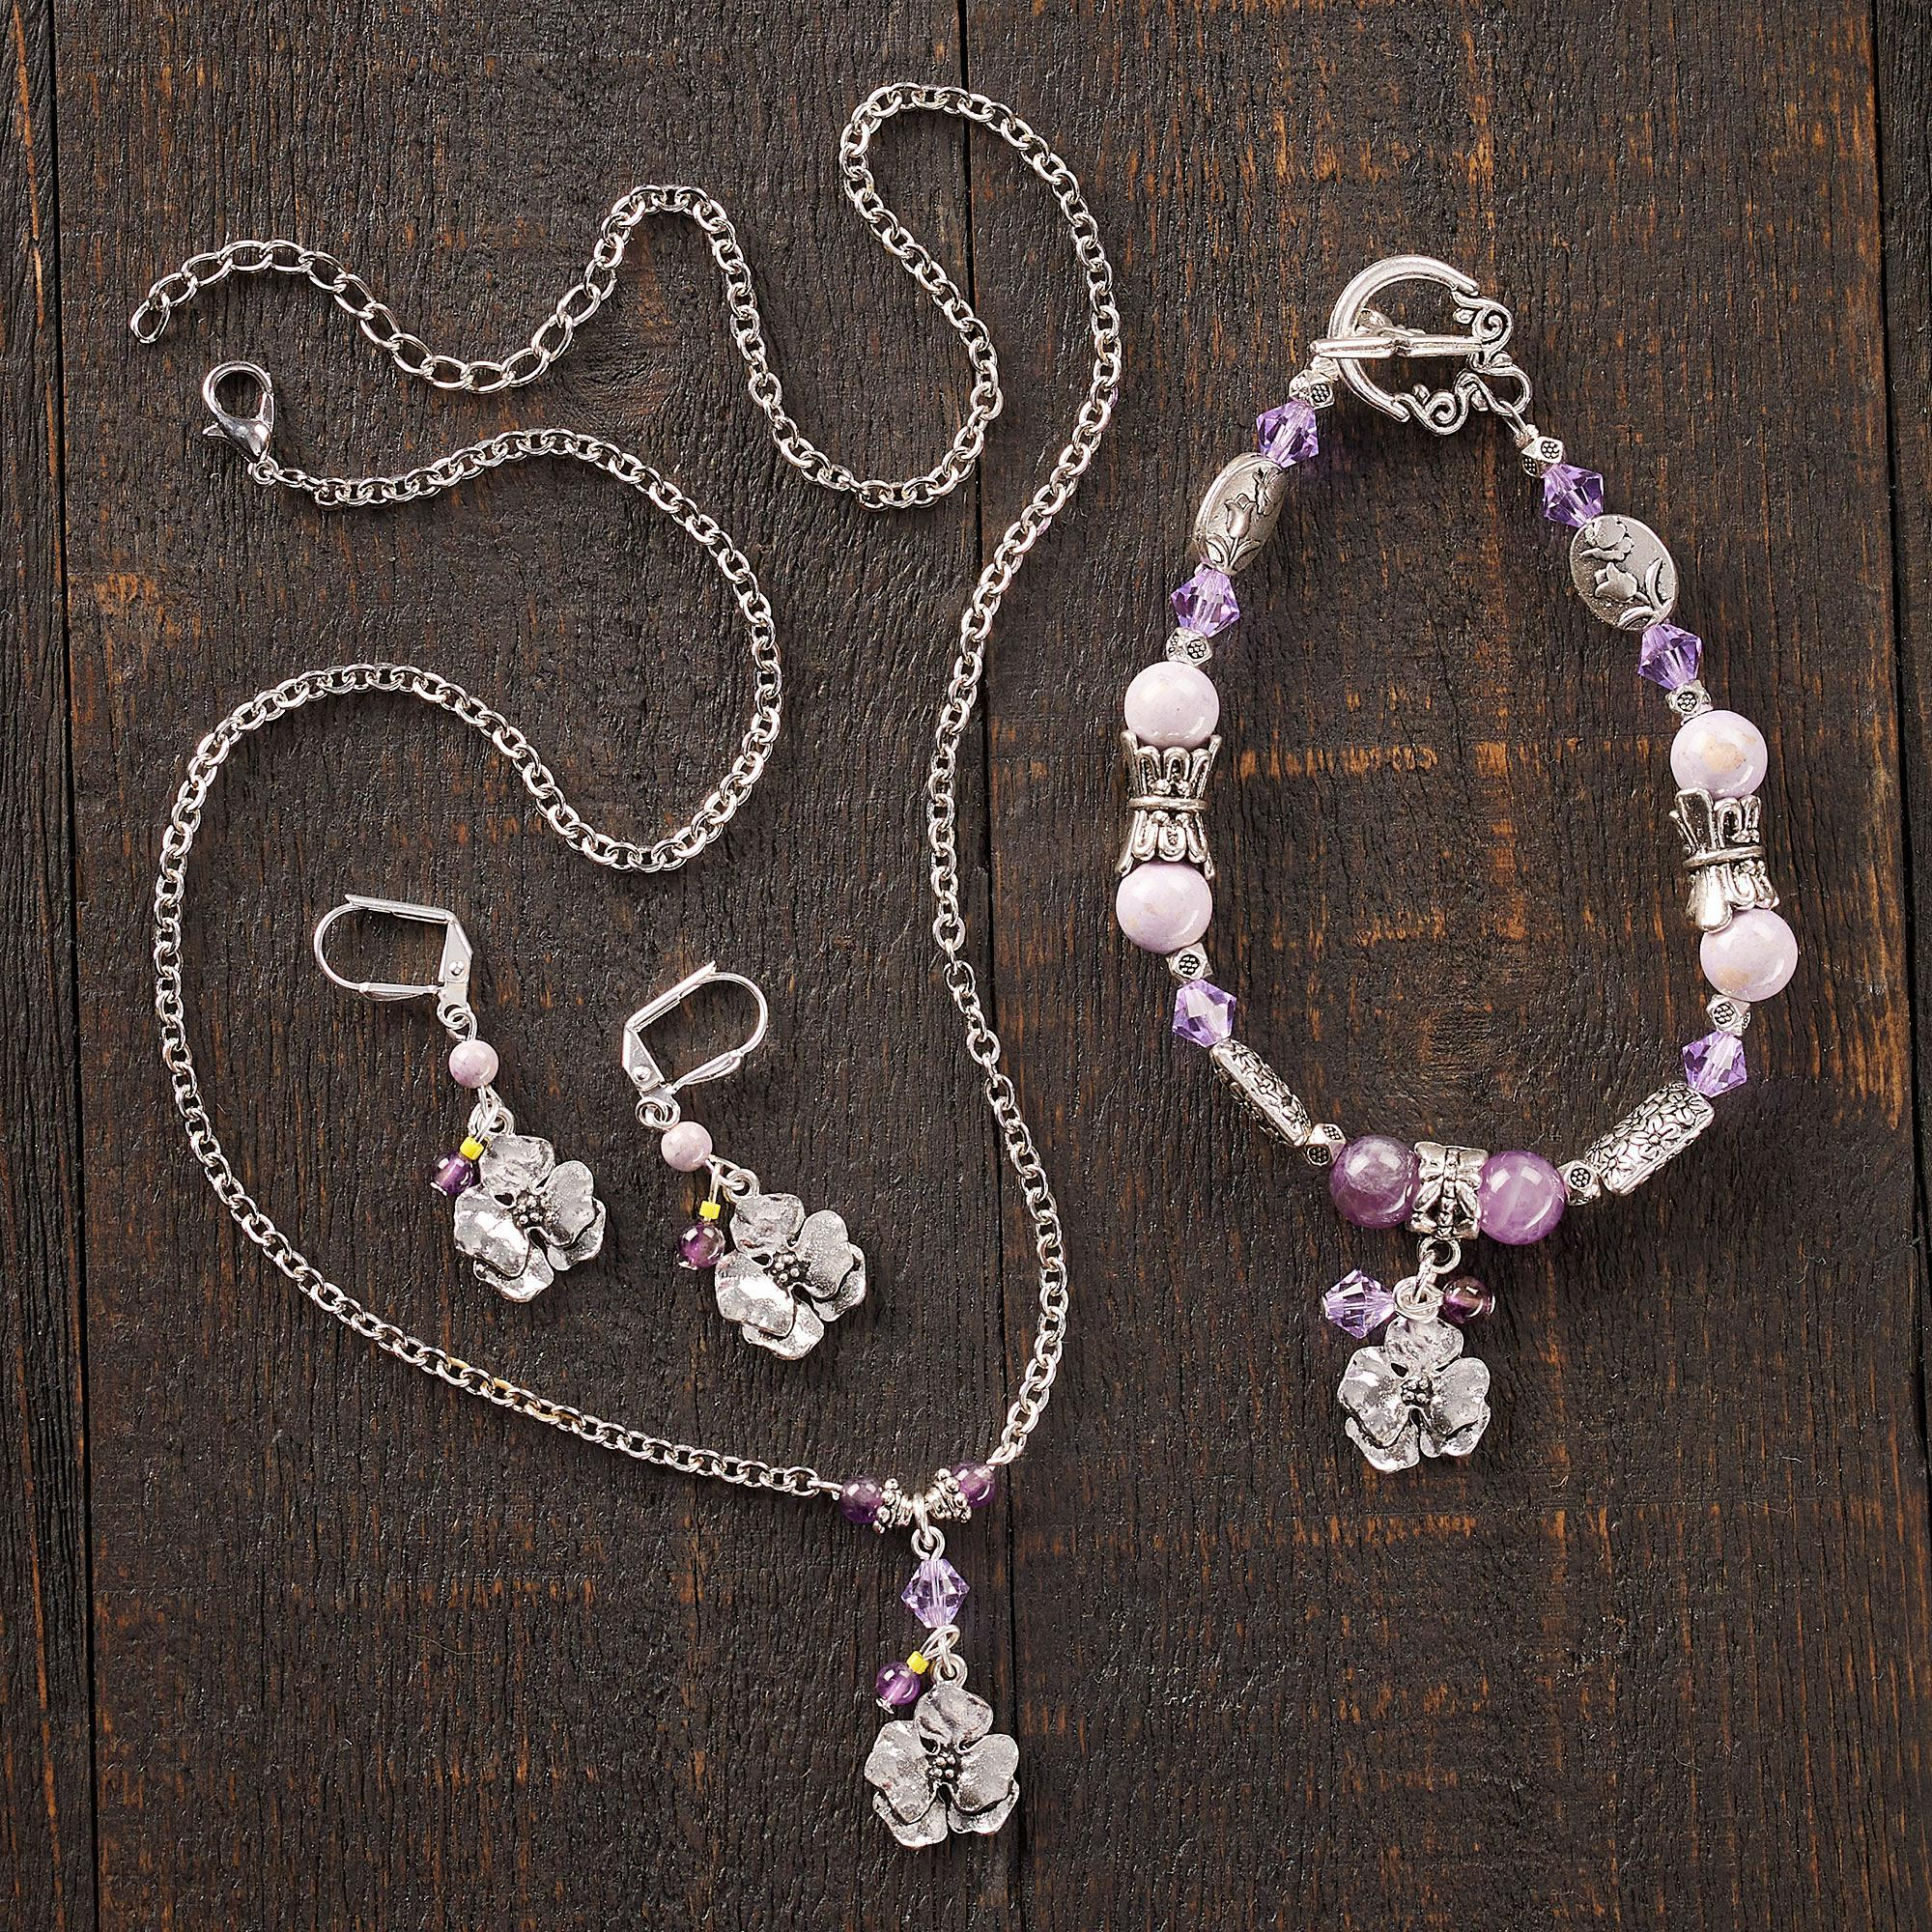 Pansy Necklace, Earrings & Bracelet